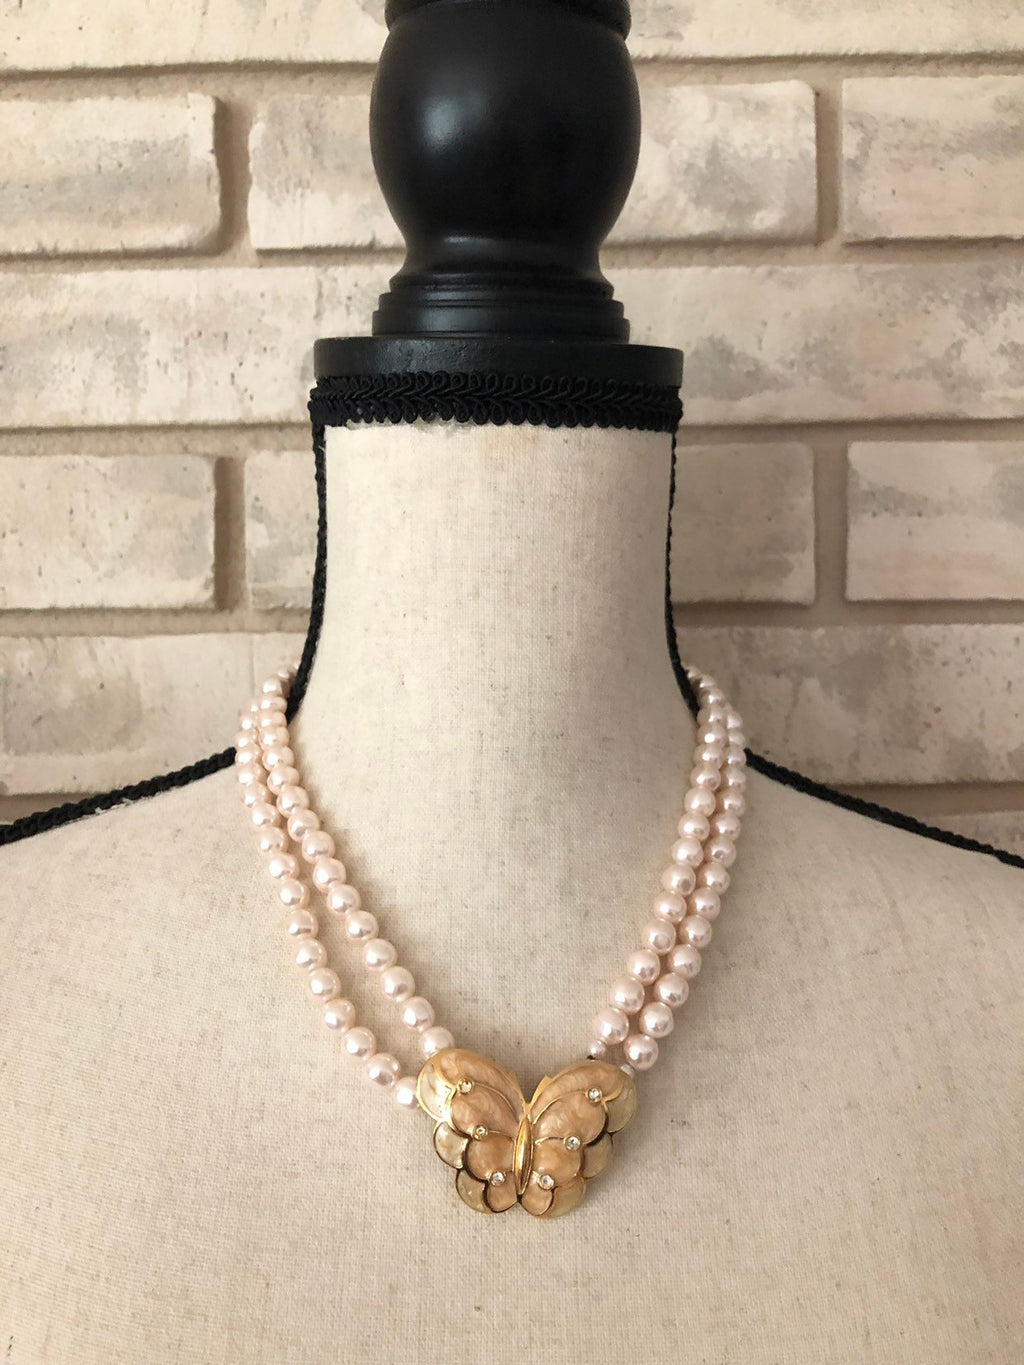 Kenneth Jay Lane Blush Pearl & Enamel Butterfly Pendant-Sustainable Fashion with Vintage Style-Trending Designer Fashion-24 Wishes